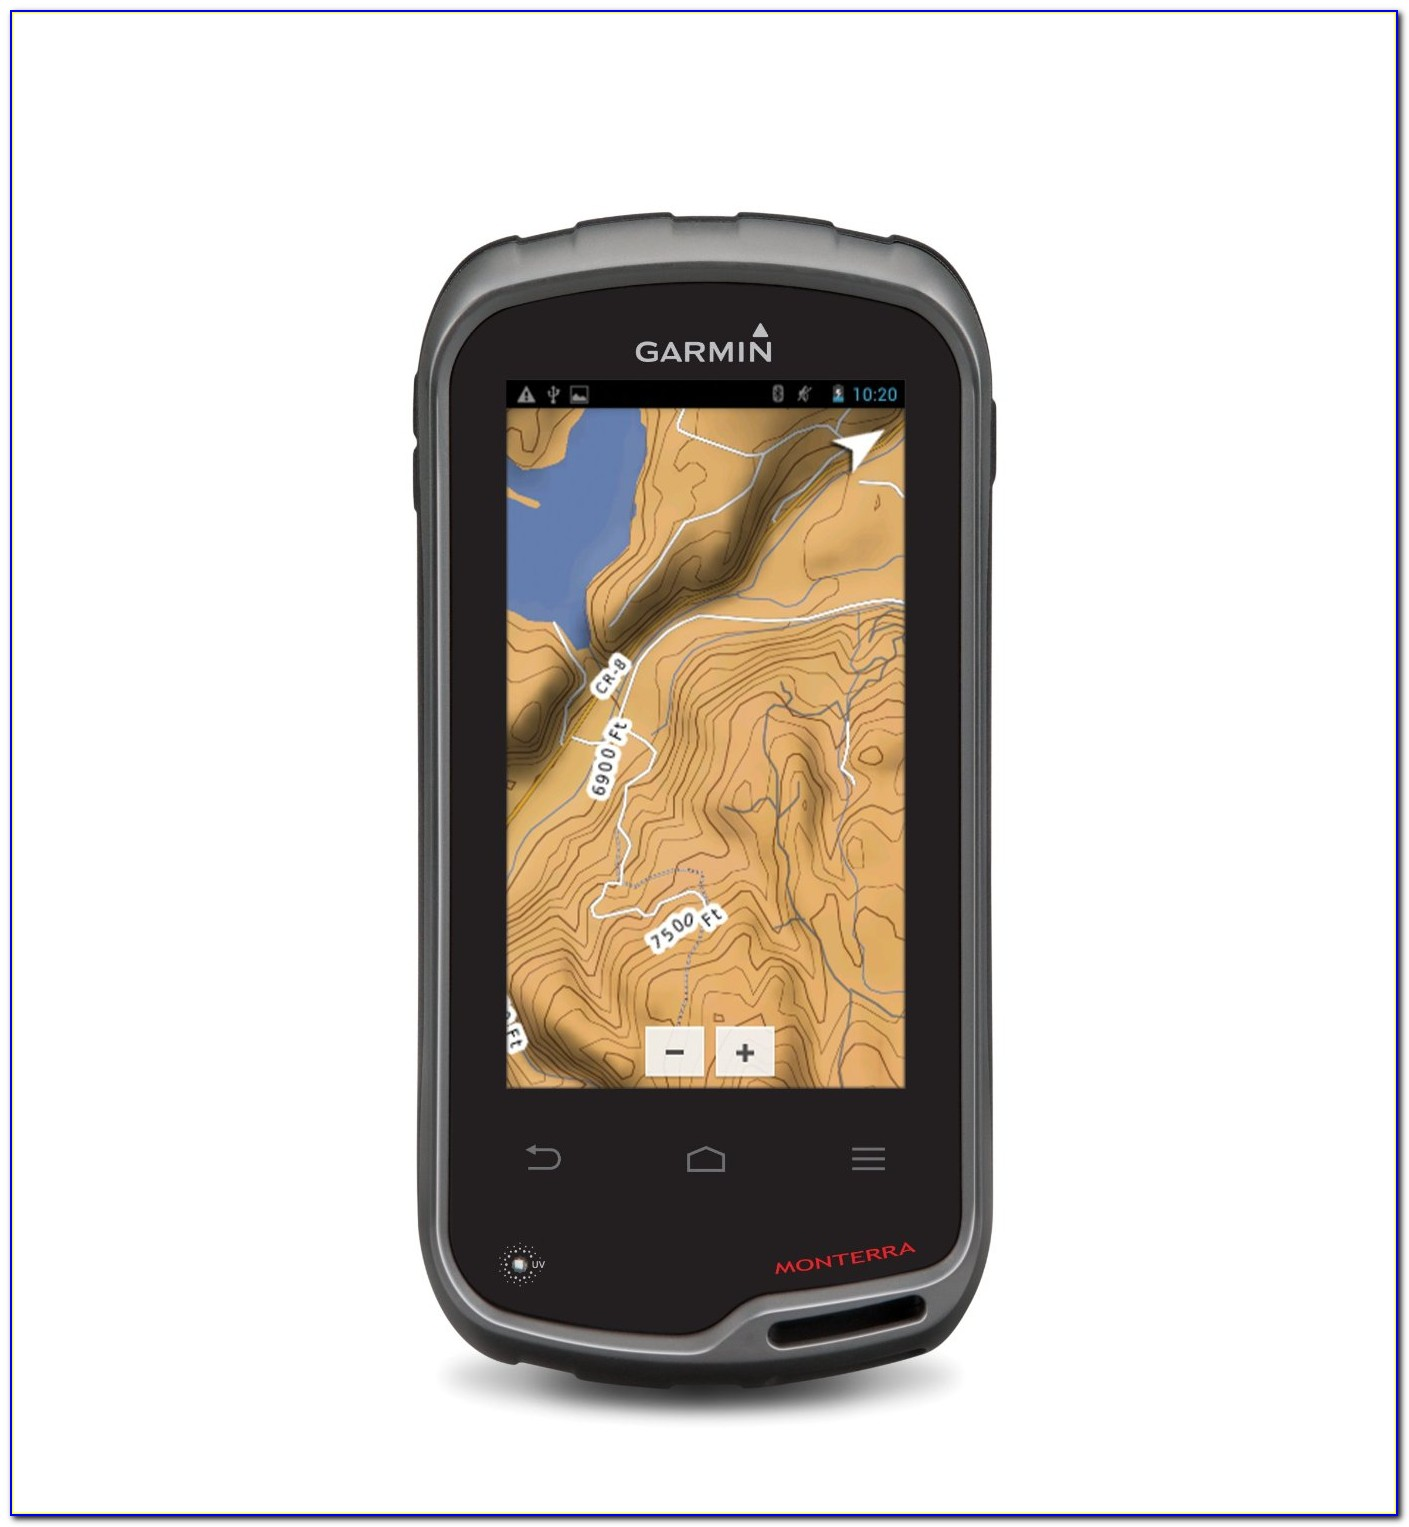 Garmin Auto Gps With Topographic Maps